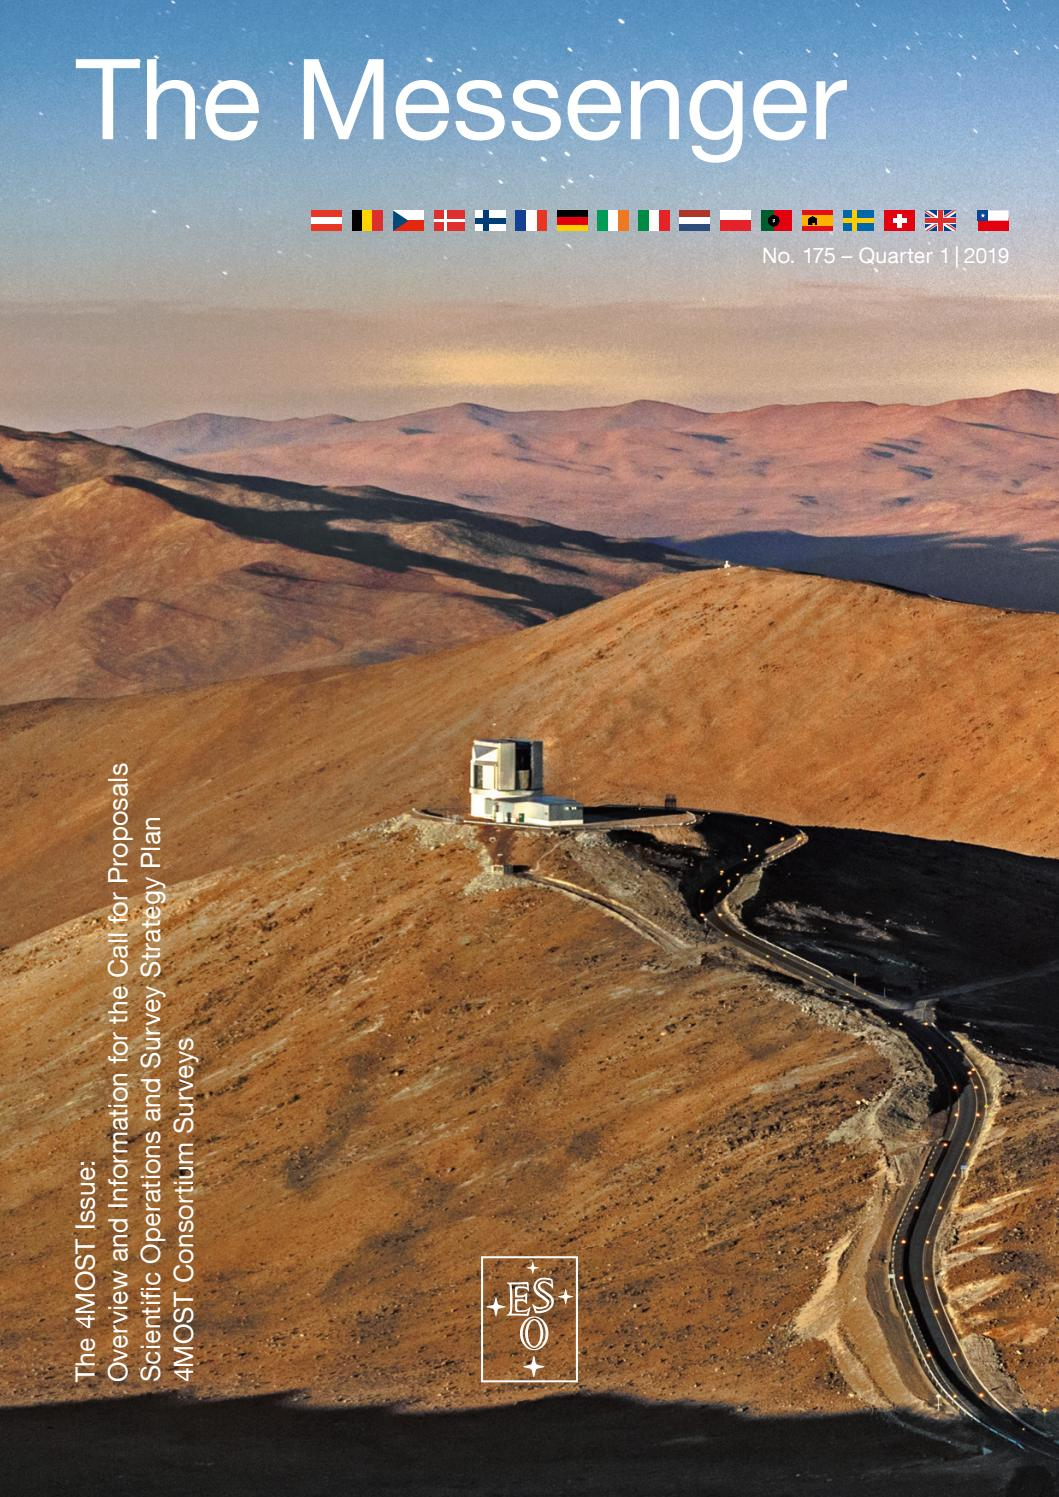 The Messenger 175 by European Southern Observatory - issuu